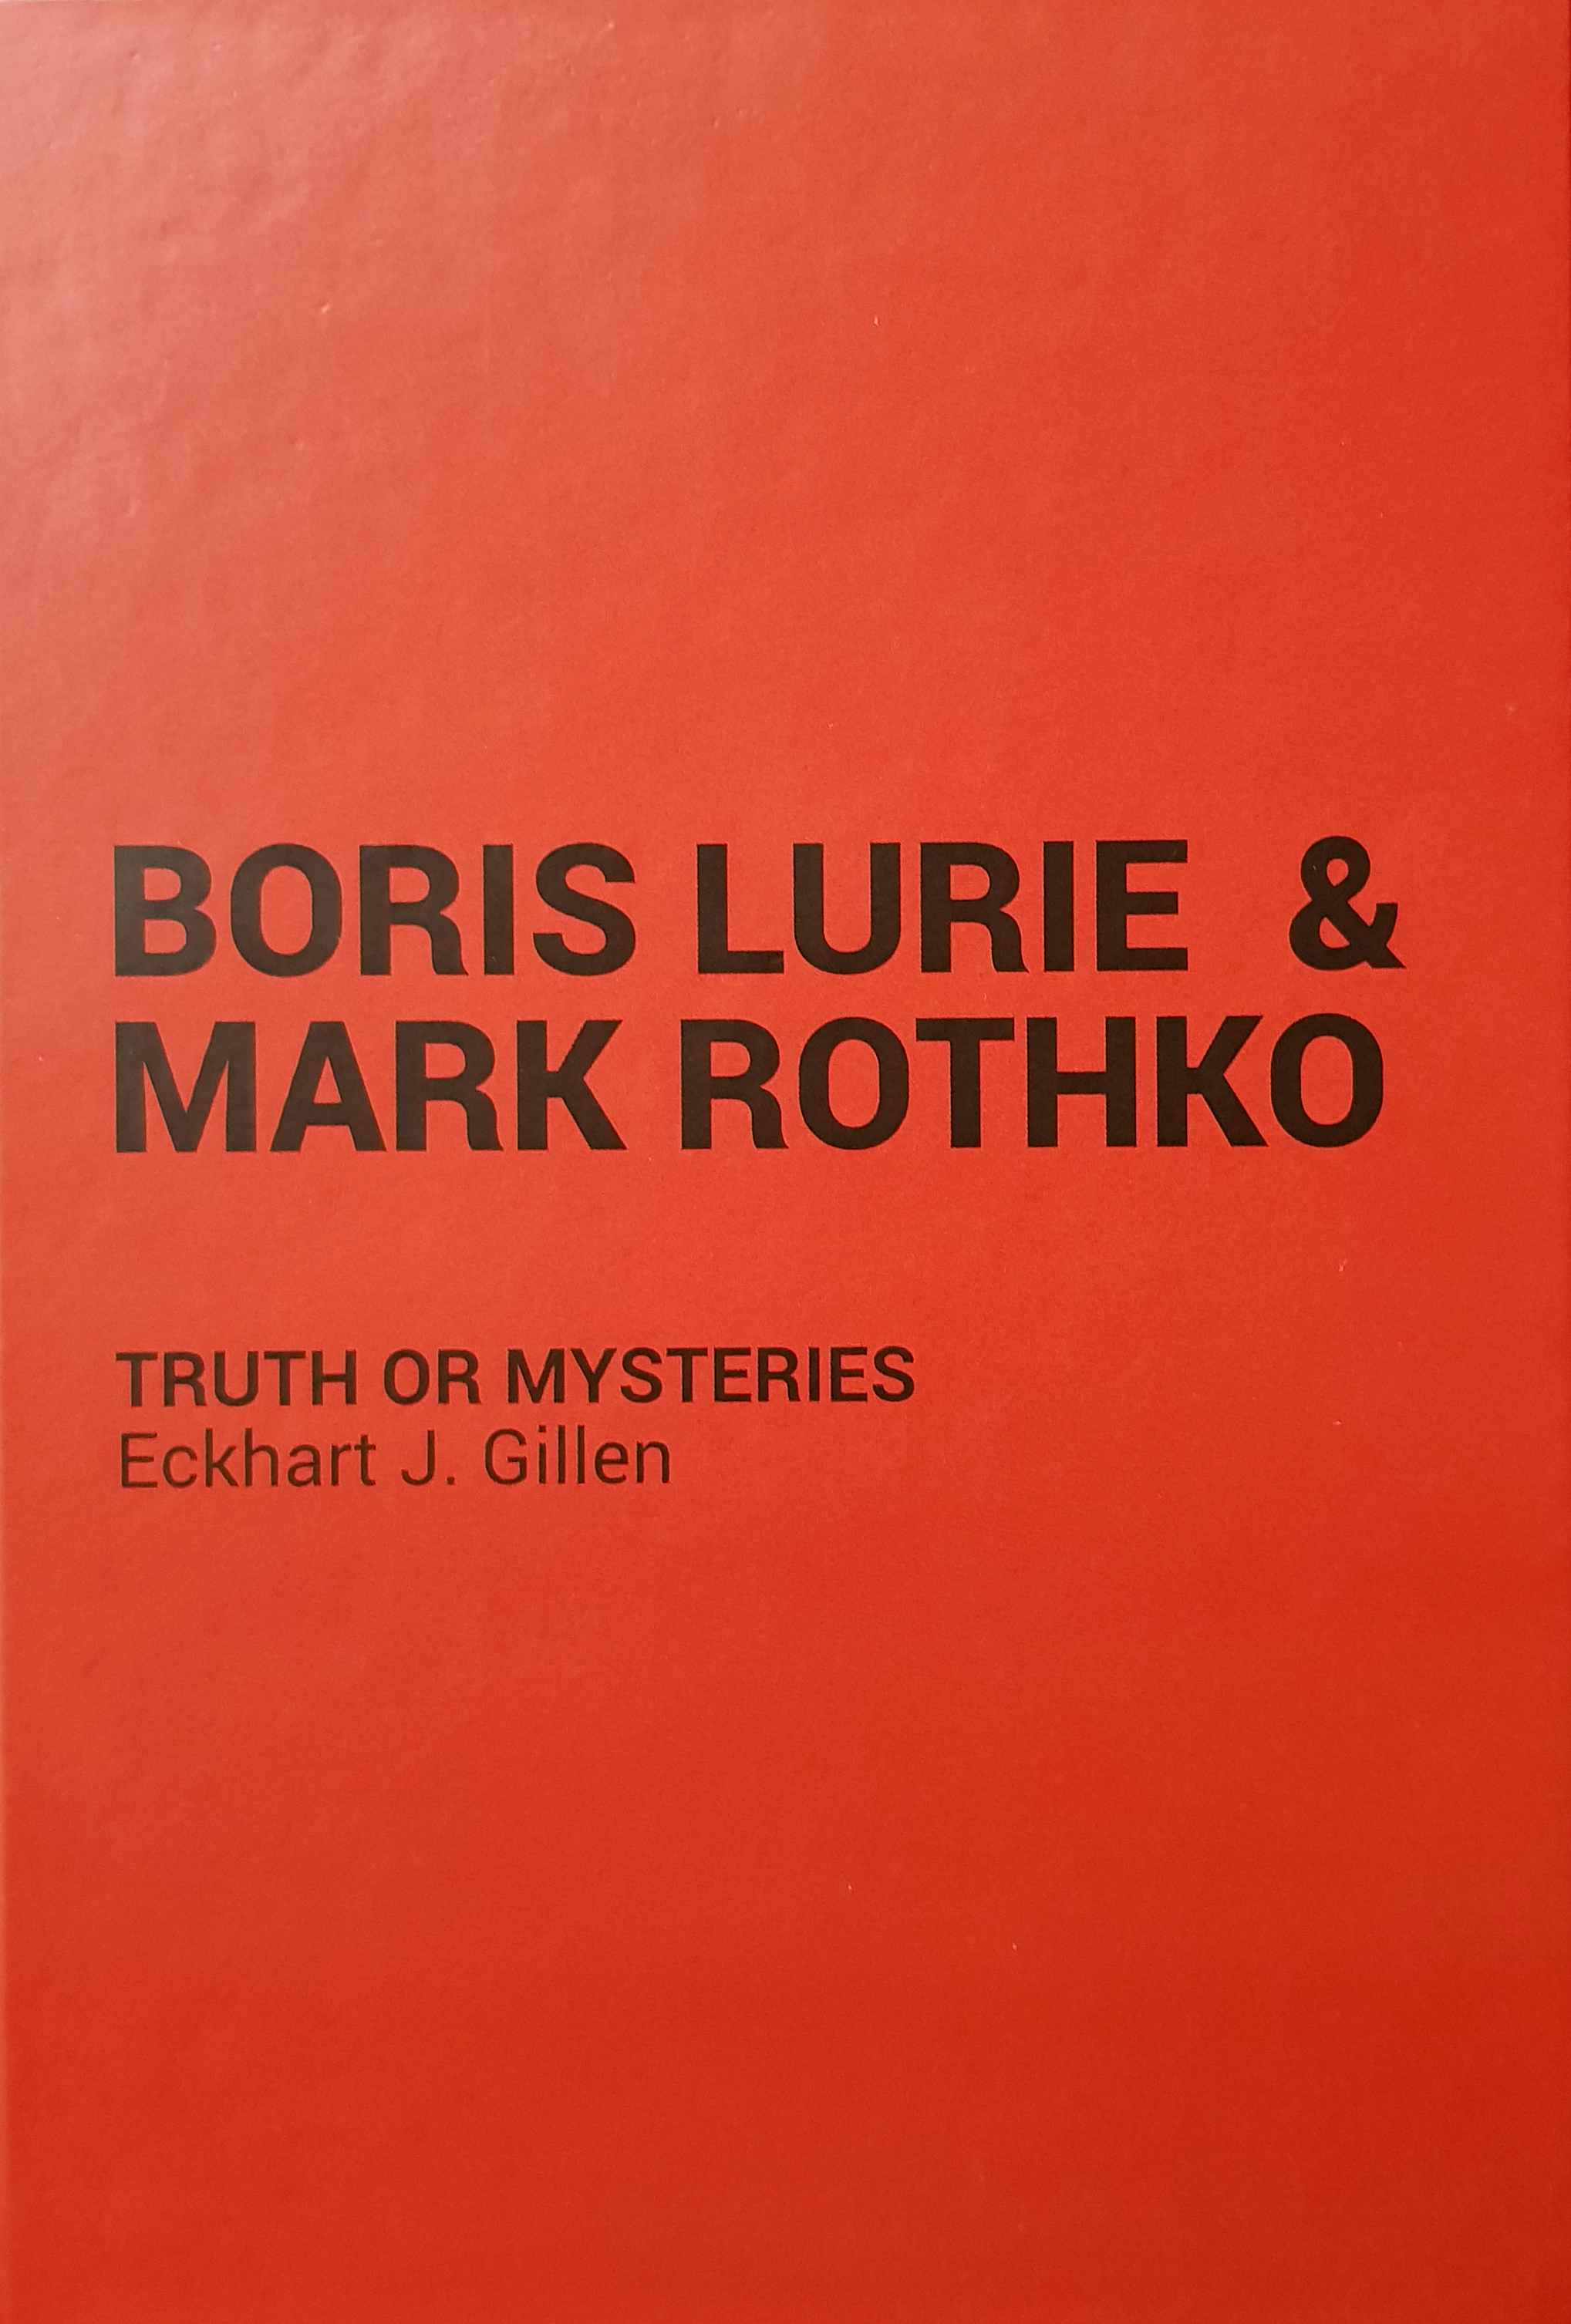 Boris Lurie & Mark Rothko: Truth or Mysteries